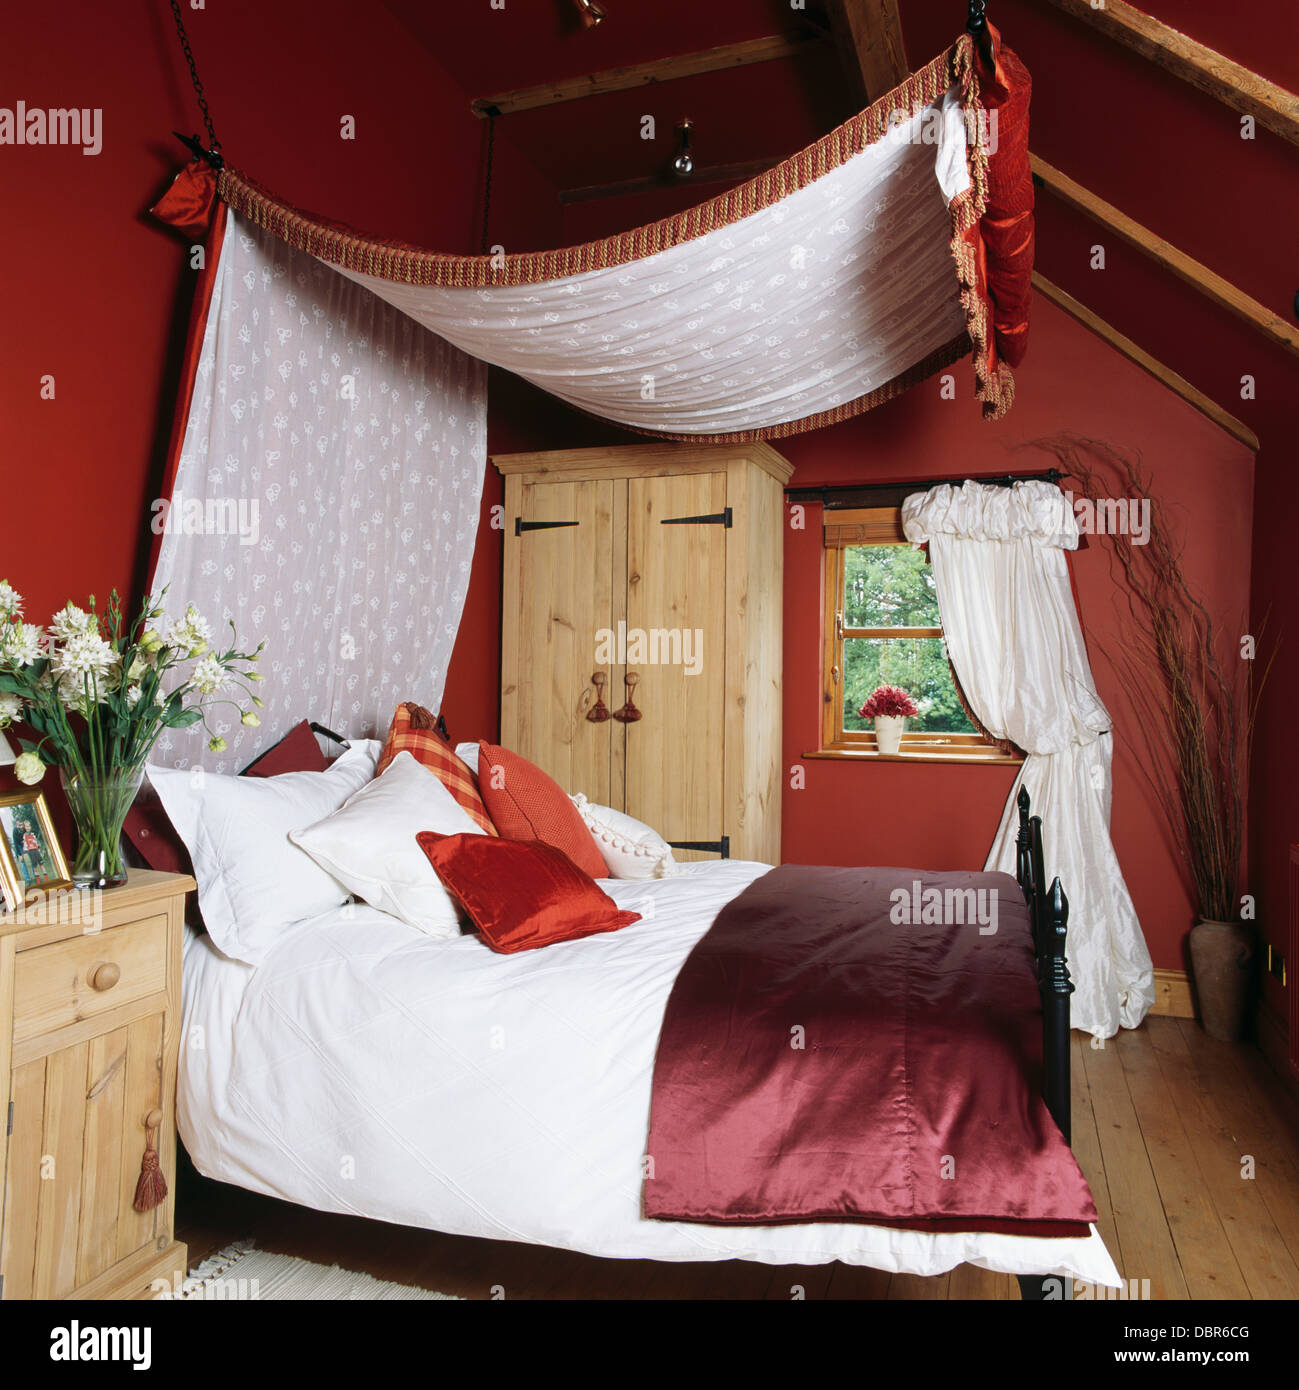 Canopy with white voile lining above bed with white duvet and red satin throw in red attic bedroom in country cottage & Canopy with white voile lining above bed with white duvet and red ...